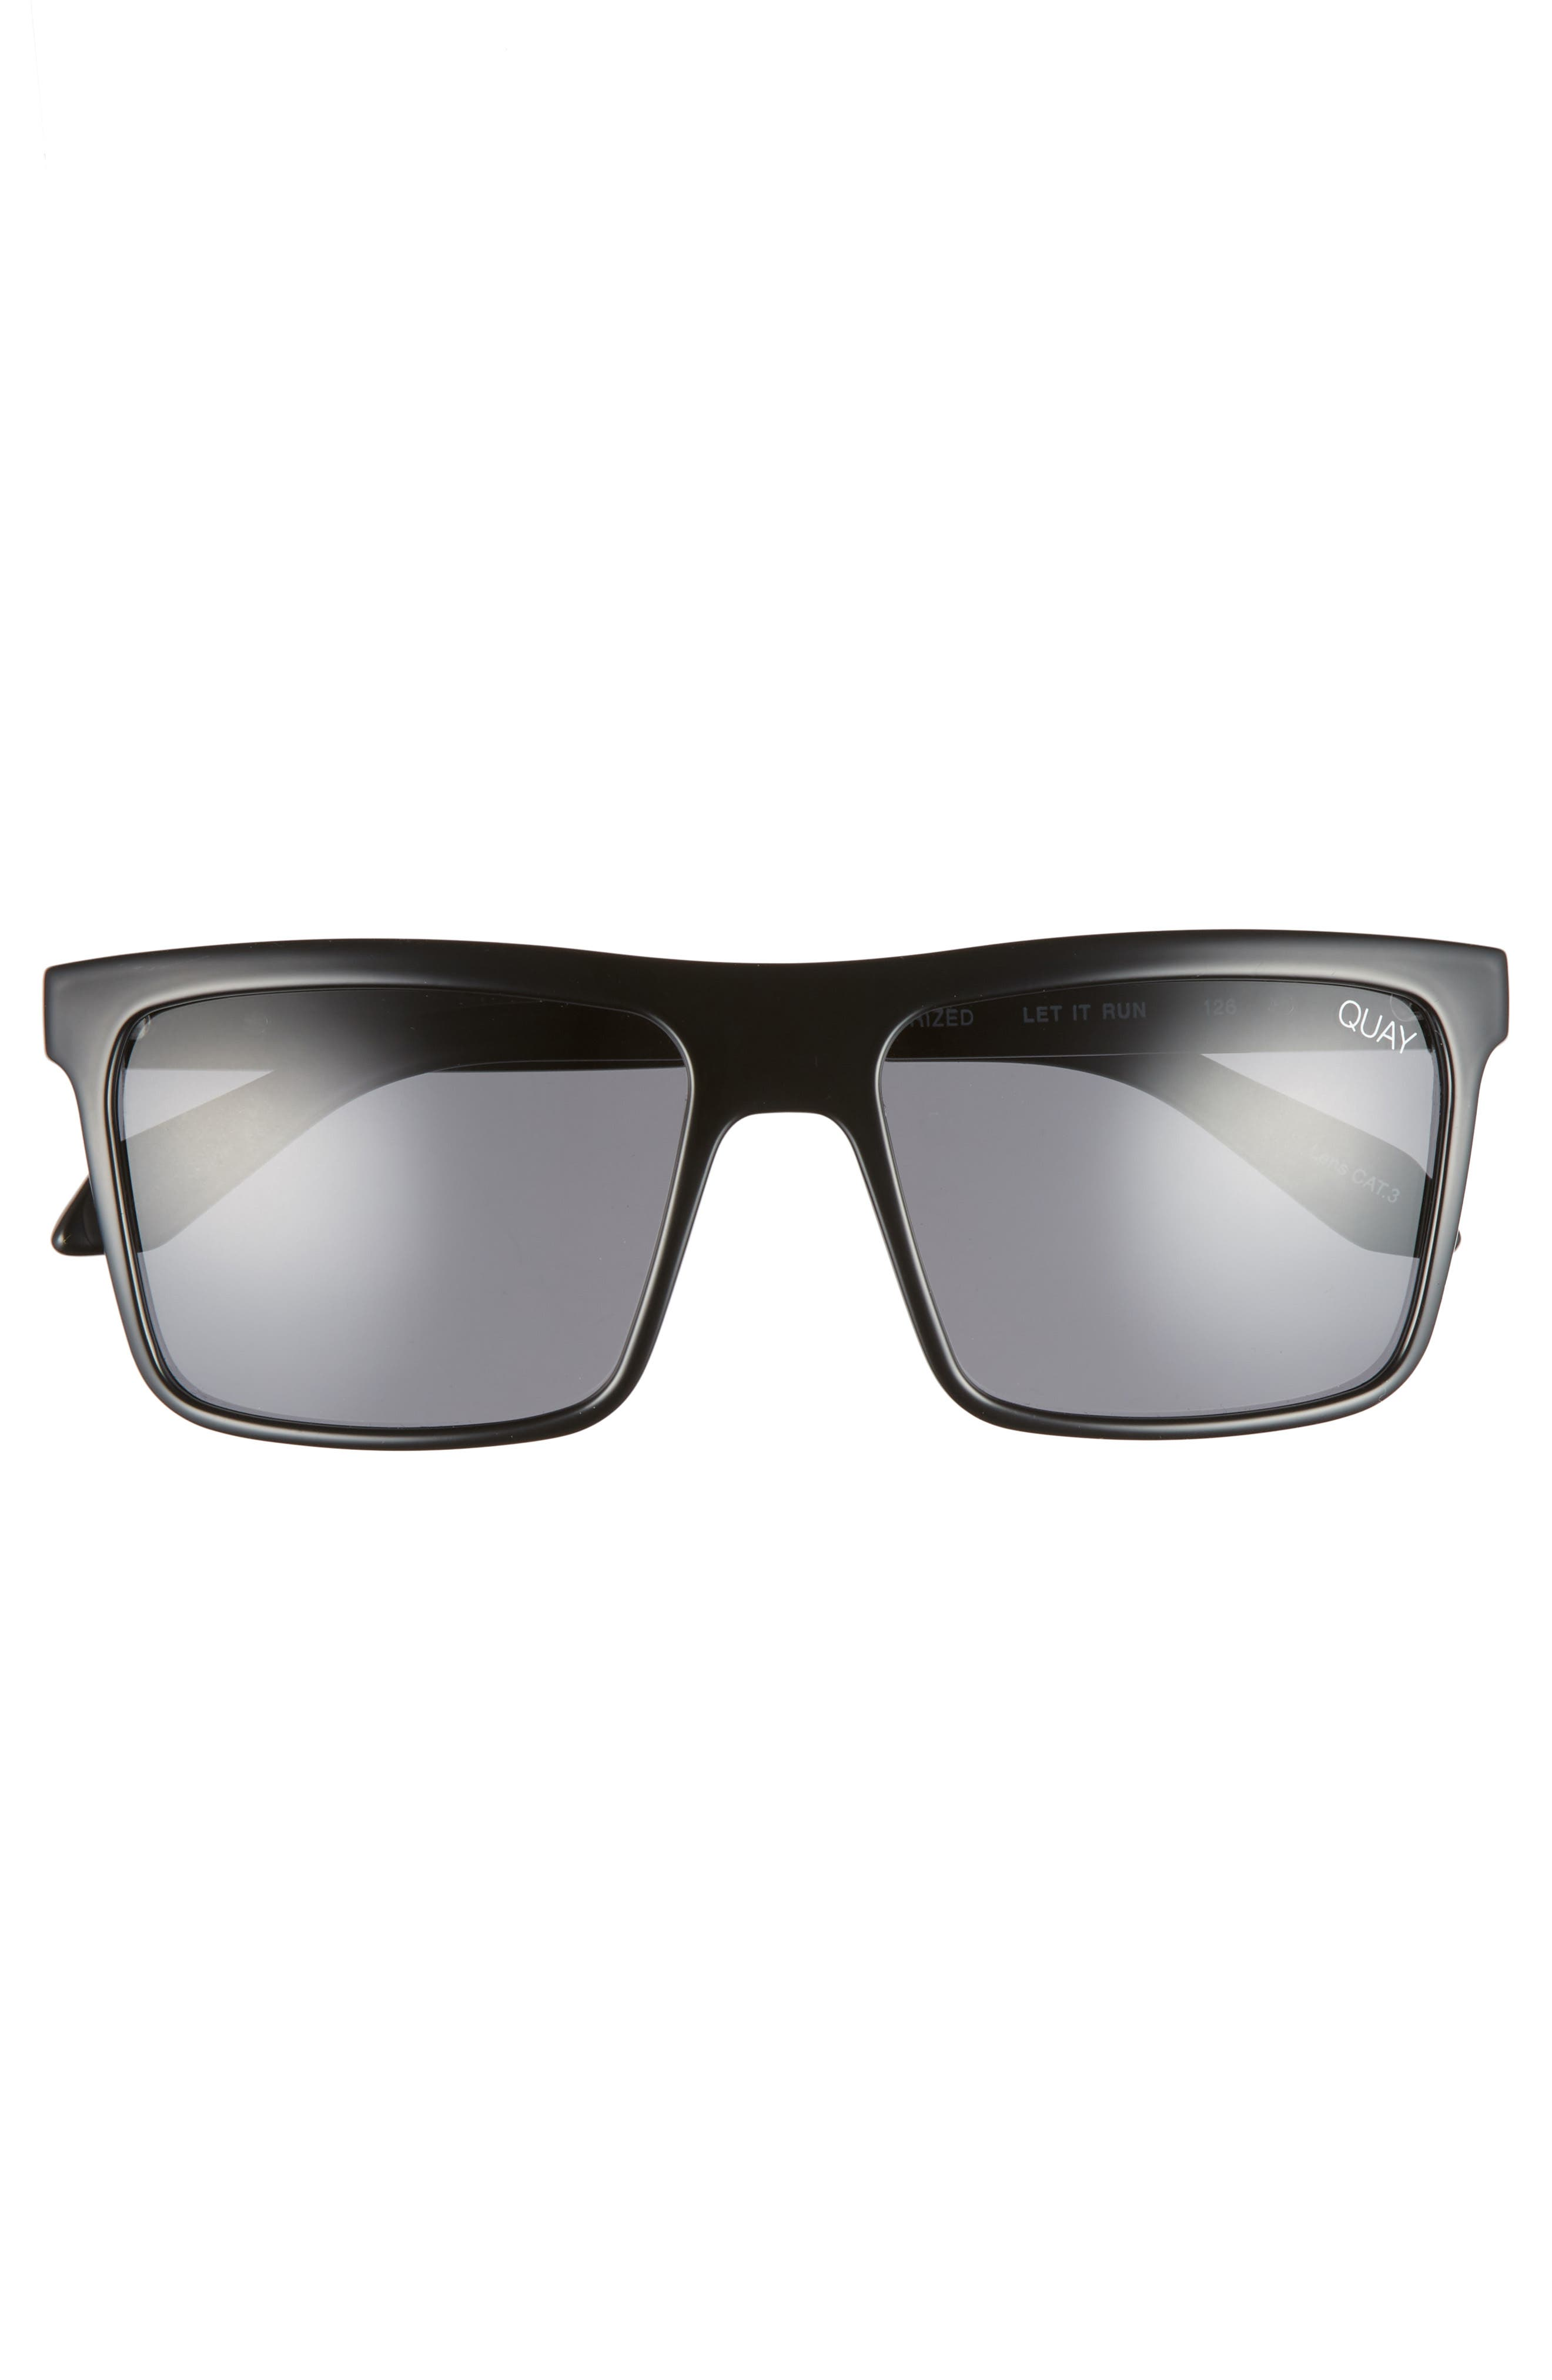 Let It Run 57mm Polarized Sunglasses,                             Alternate thumbnail 2, color,                             BLACK / SMOKE LENS